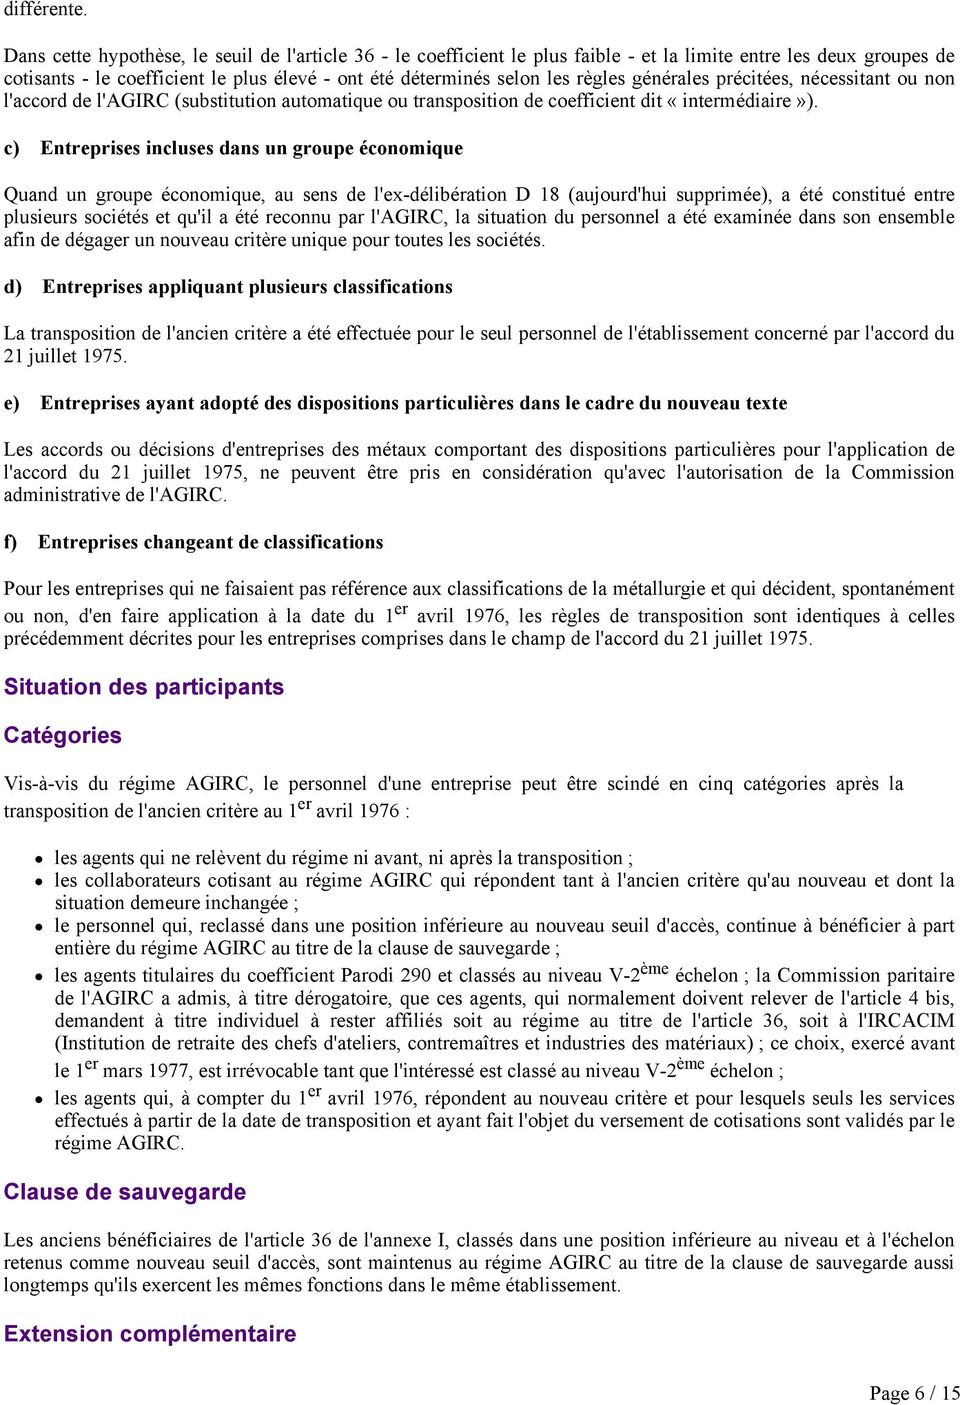 Conditions D Application Des Nouvelles Classifications Au Regard Du